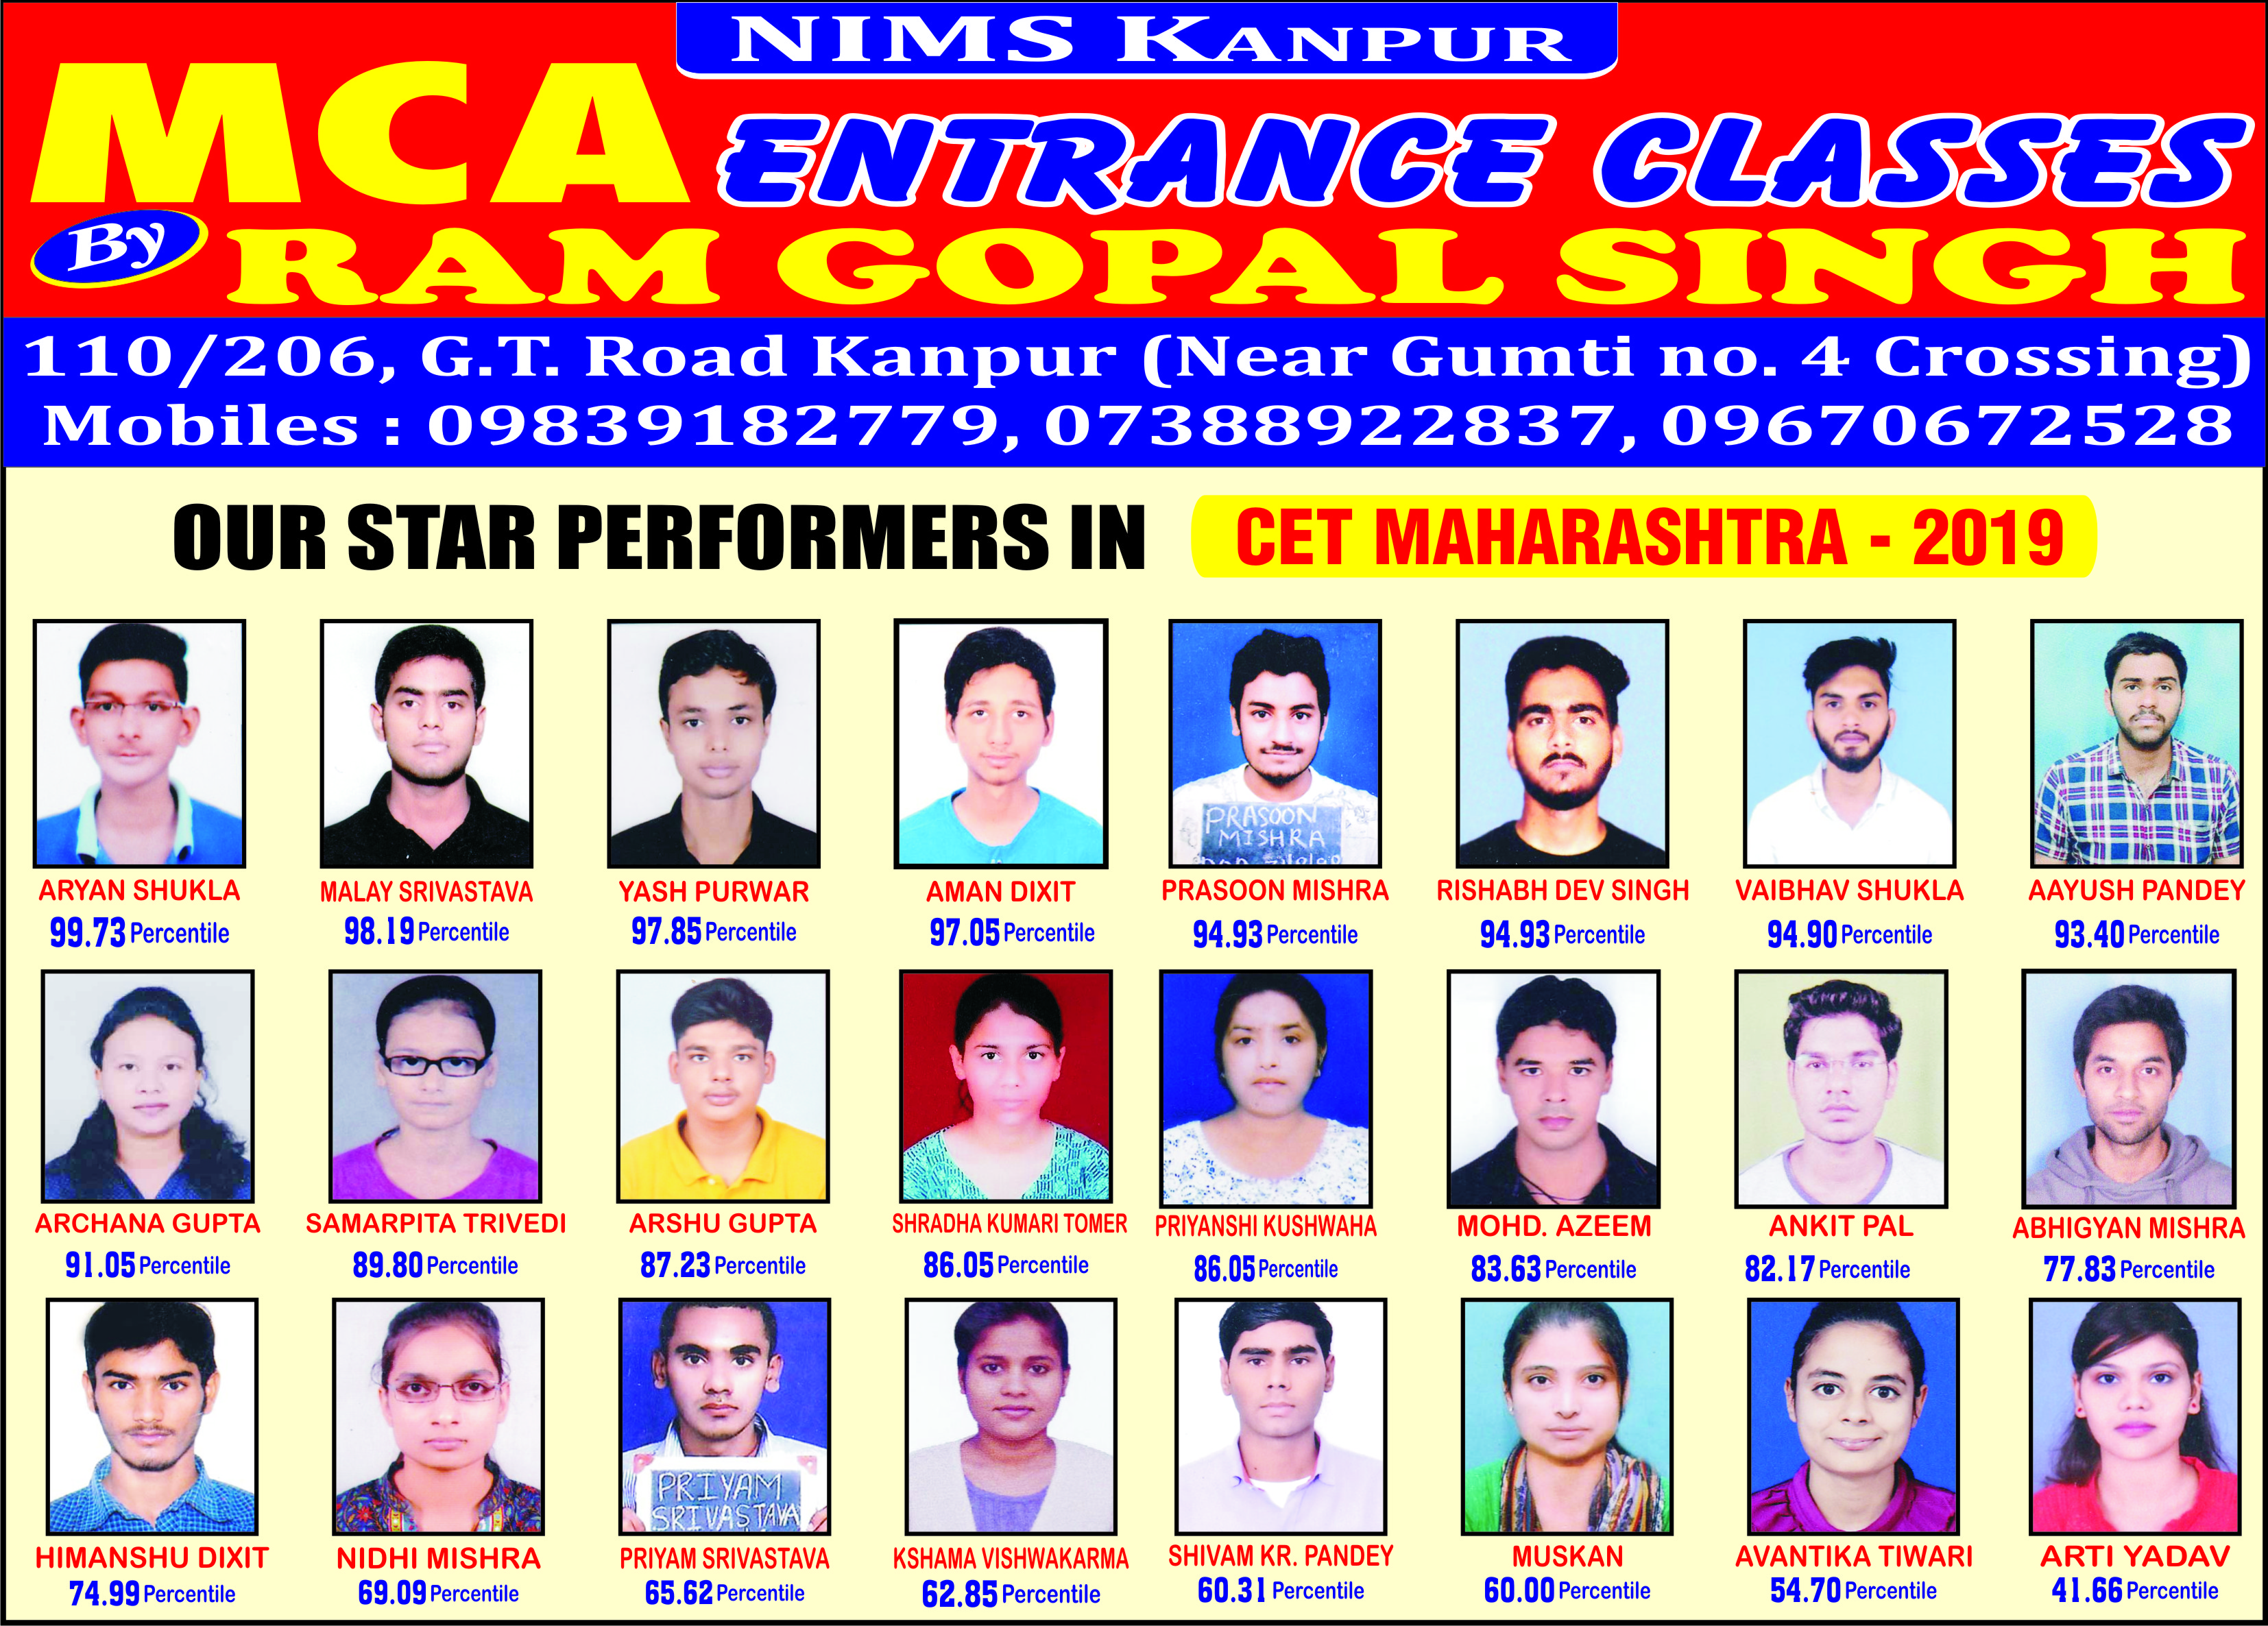 NIMS Kanpur: MCA Entrance Coaching Classes in Kanpur